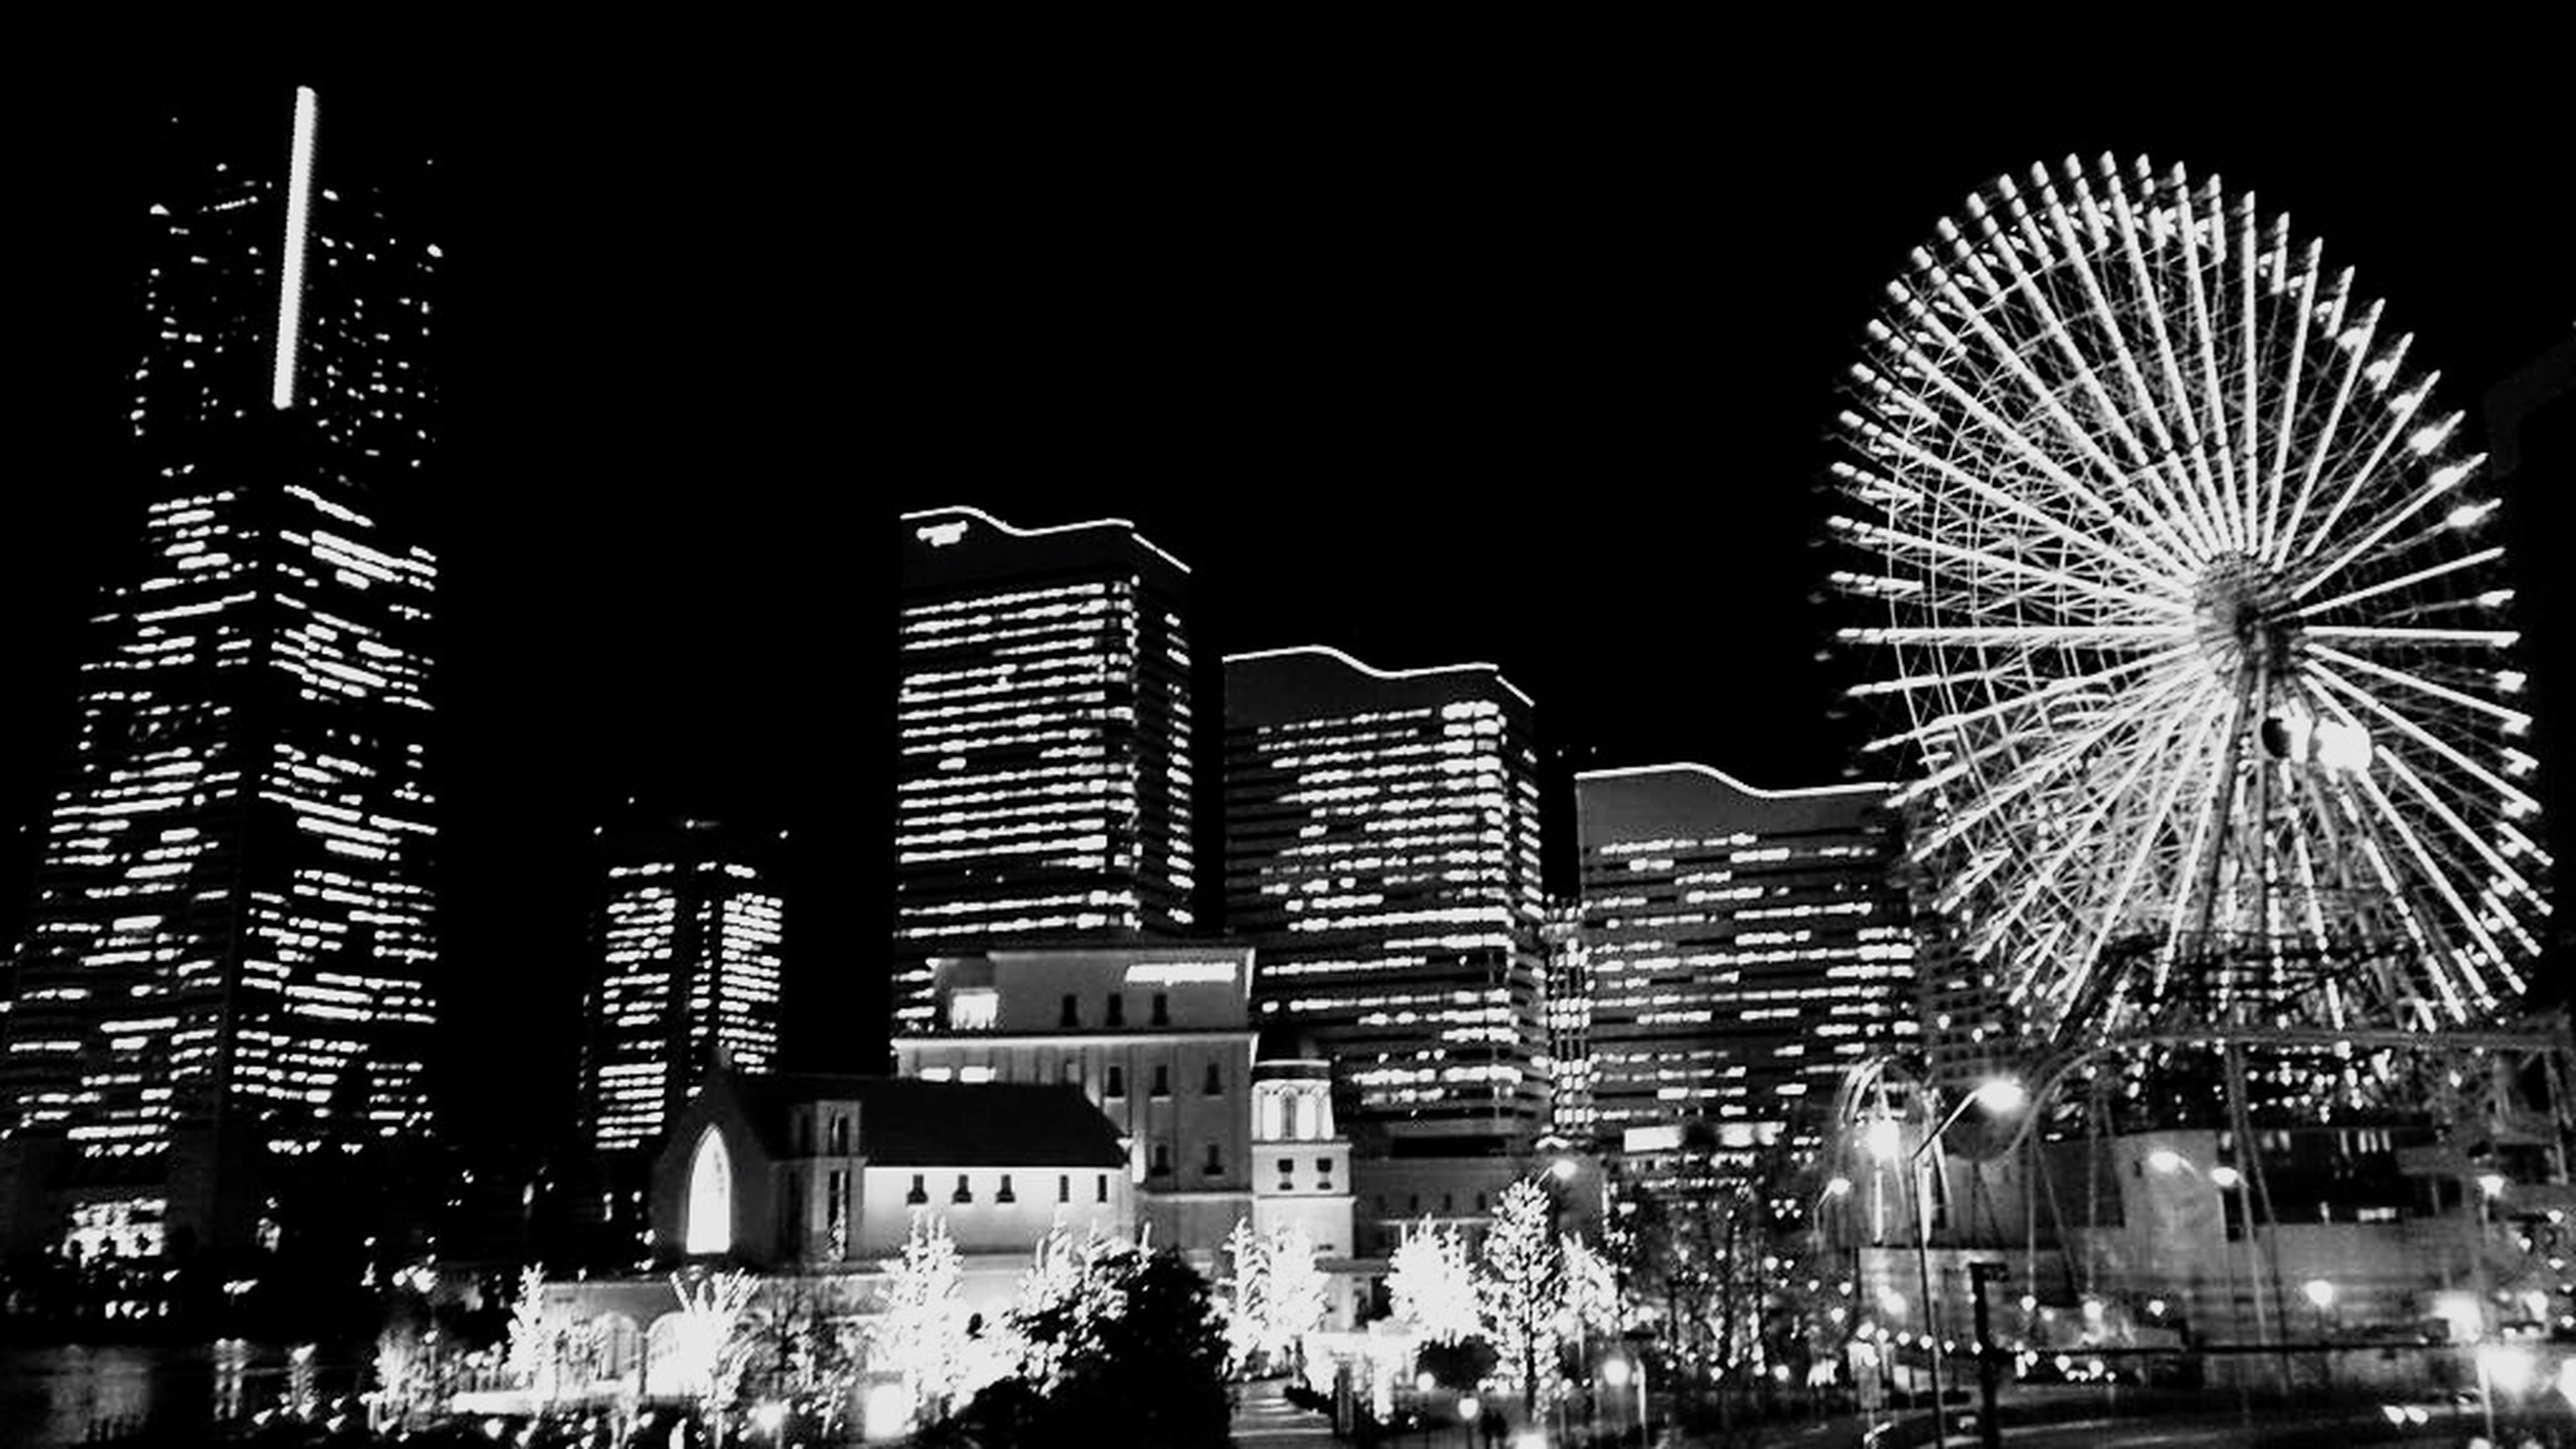 illuminated, night, architecture, built structure, building exterior, ferris wheel, low angle view, arts culture and entertainment, amusement park, city, amusement park ride, clear sky, sky, outdoors, lighting equipment, incidental people, modern, city life, no people, tall - high